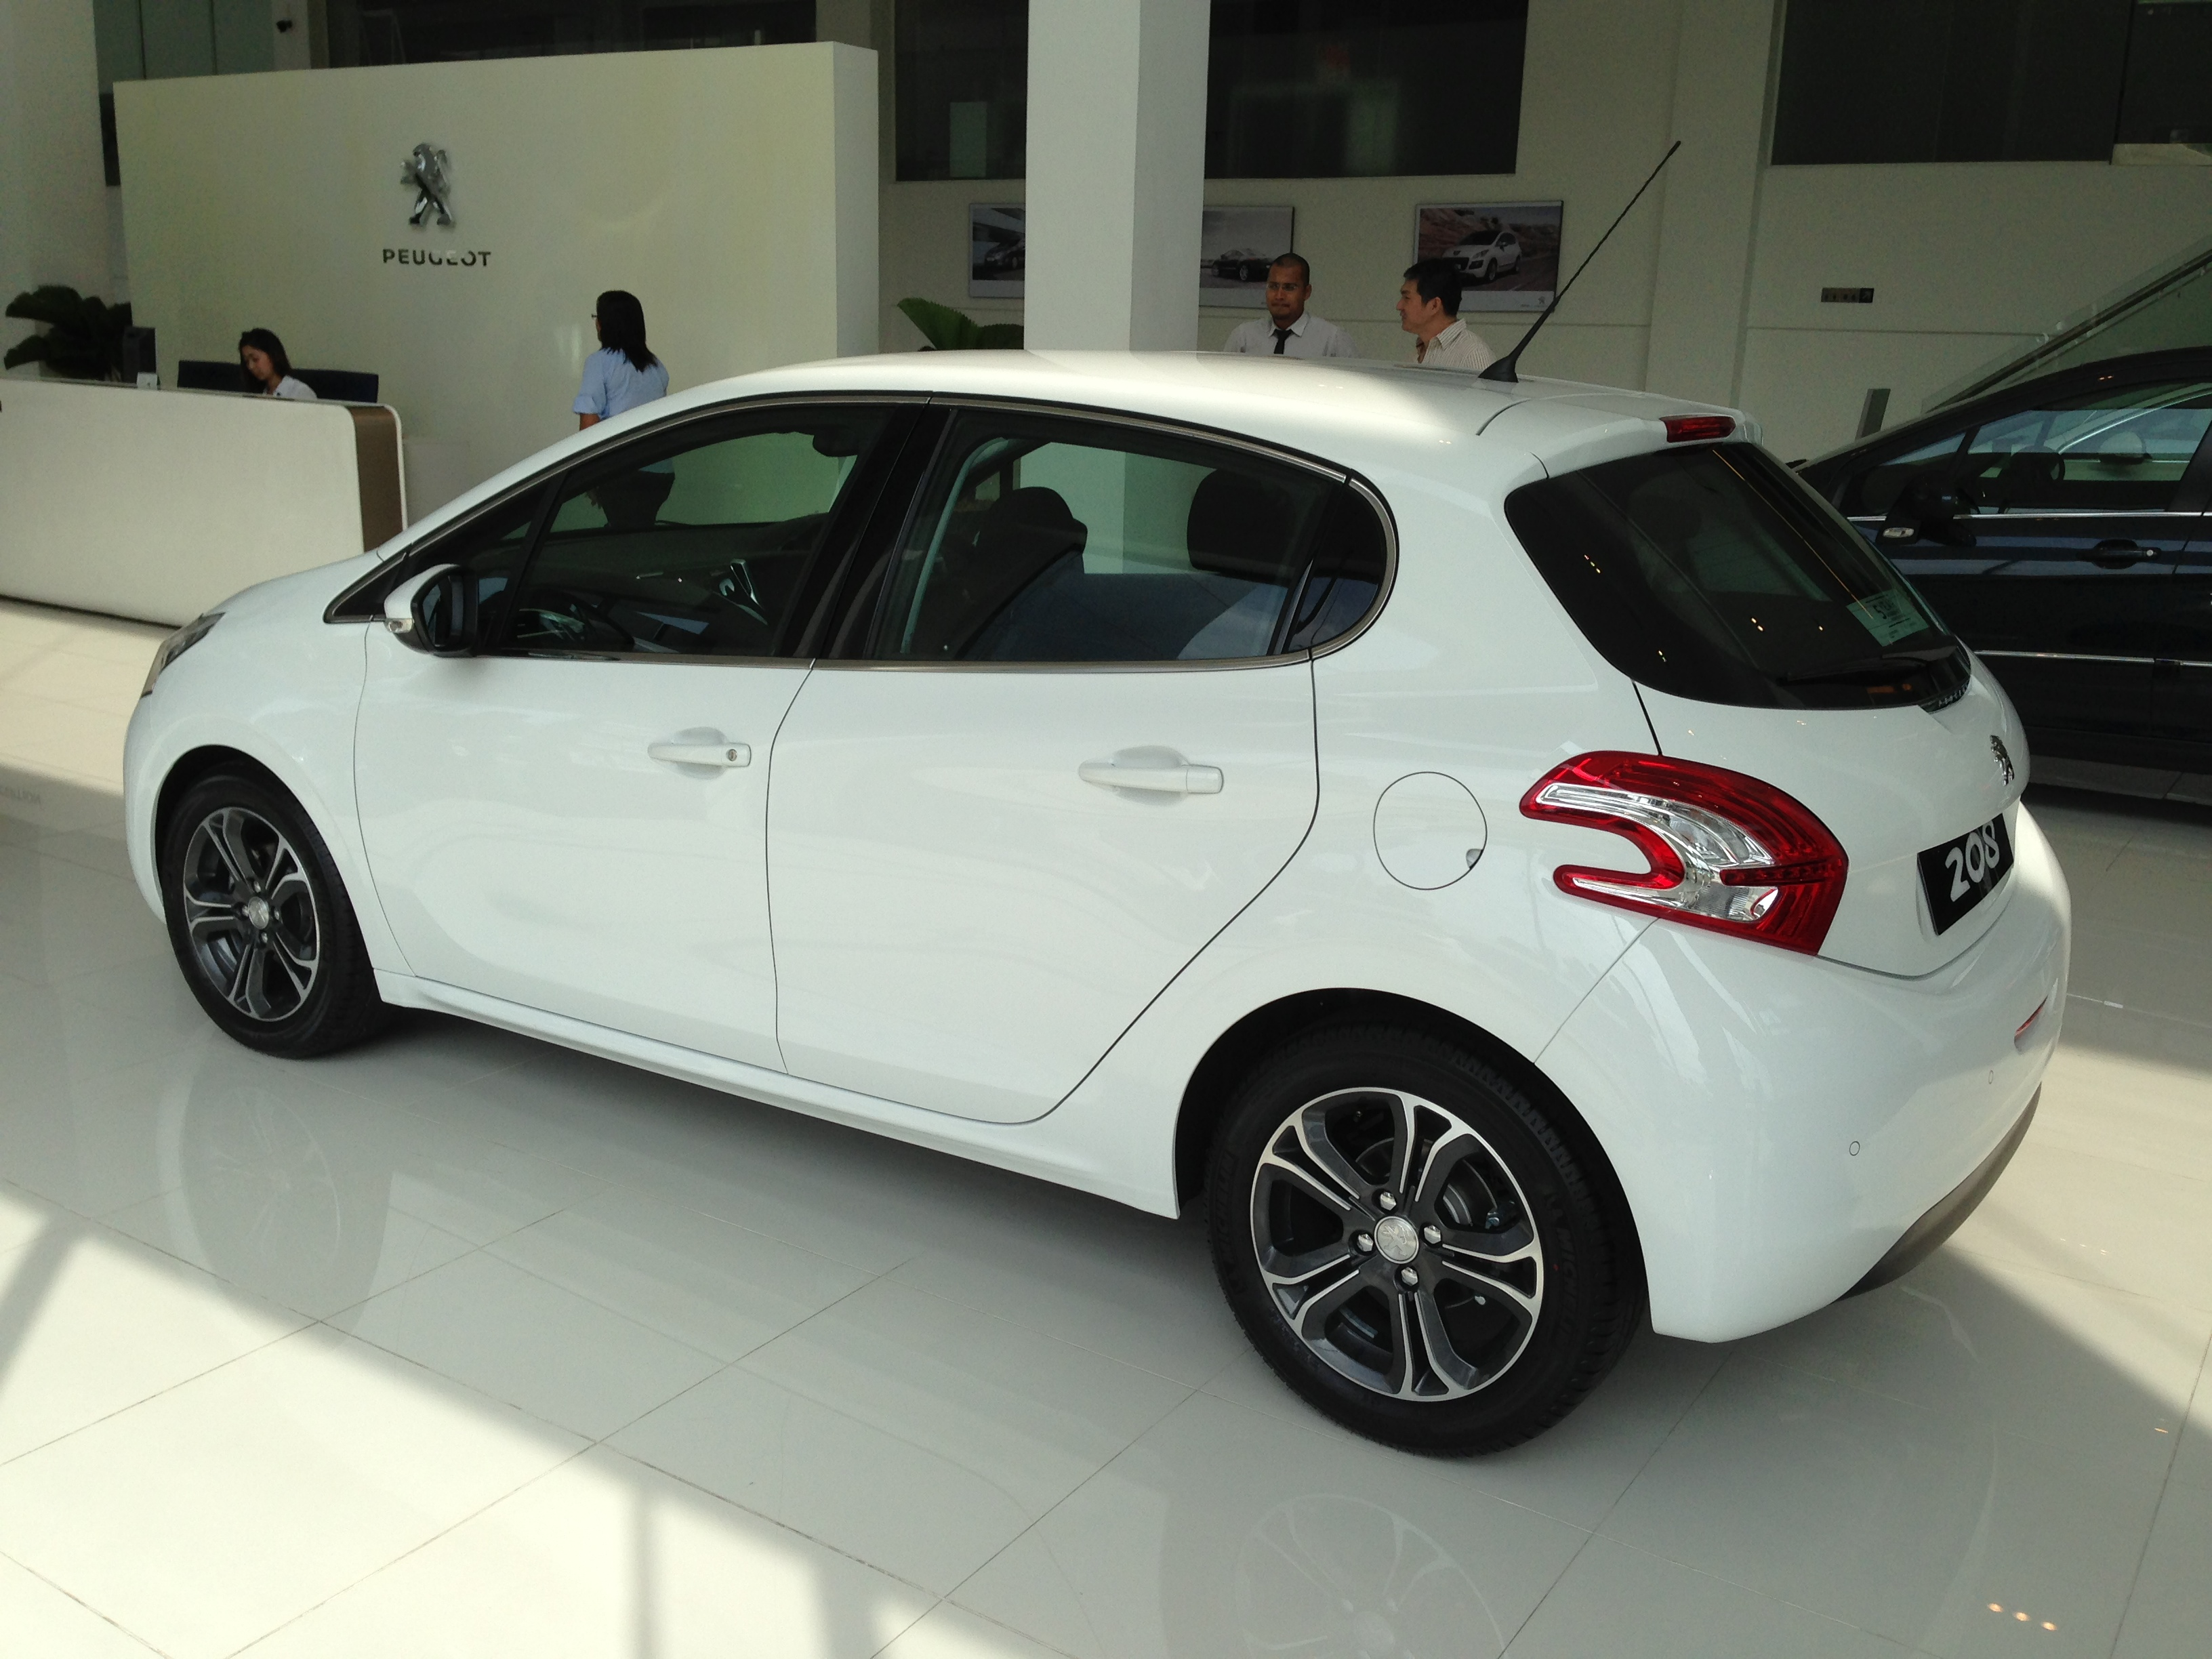 peugeot 208 on display specs unveiled via brochures image 167849. Black Bedroom Furniture Sets. Home Design Ideas